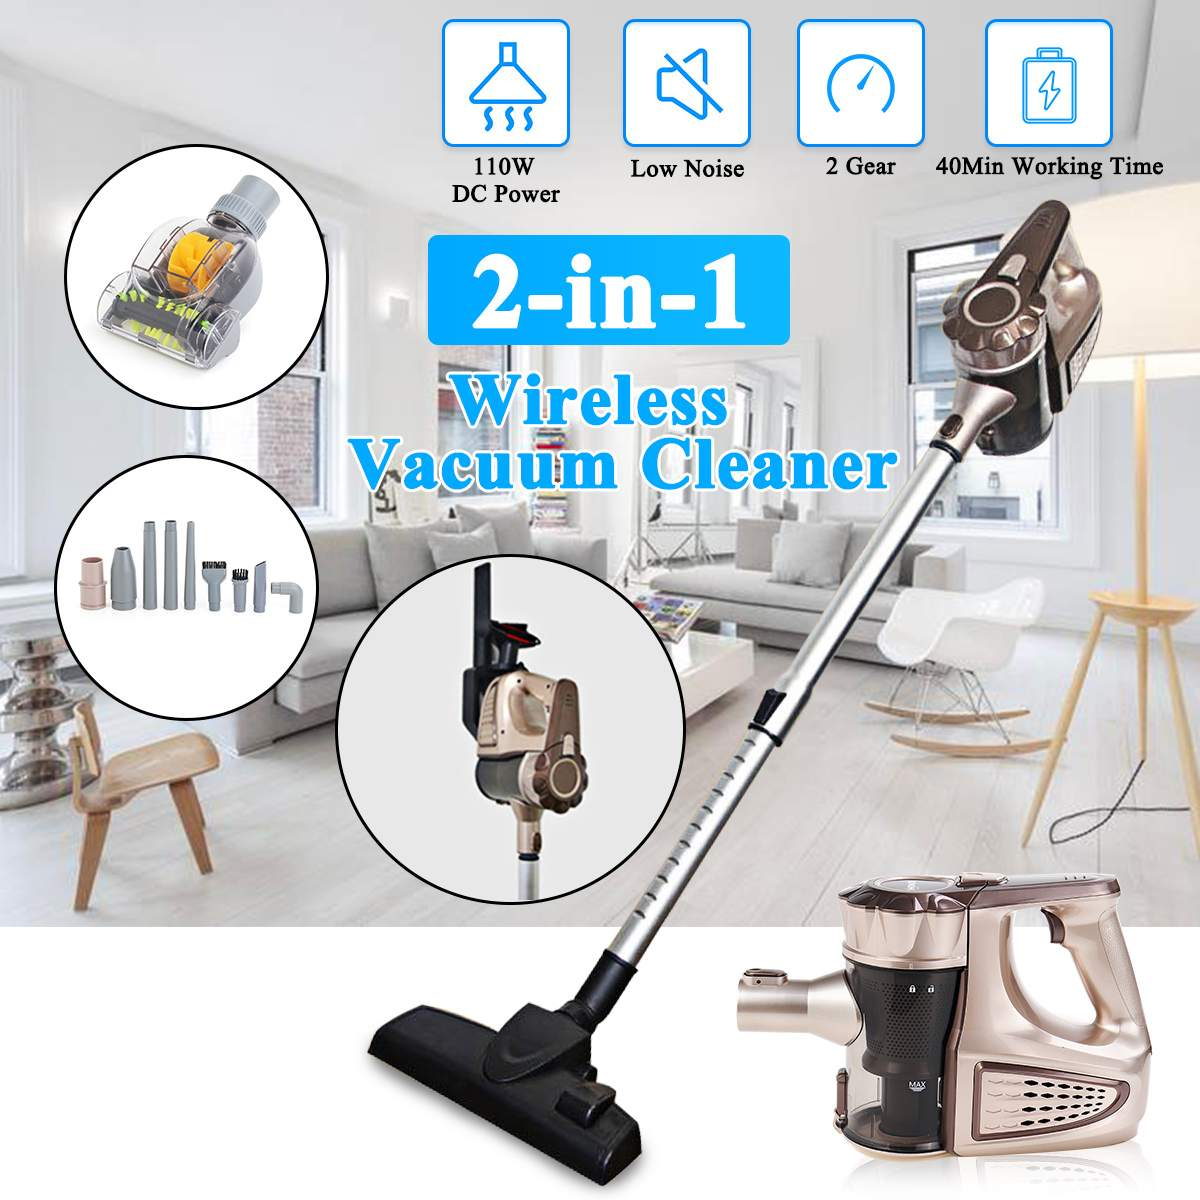 Portable 2 In 1 Handheld Cordless Vacuum Cleaner Portable Wireless Cyclone Filter Carpet Sweep Dust Collector With removing mite